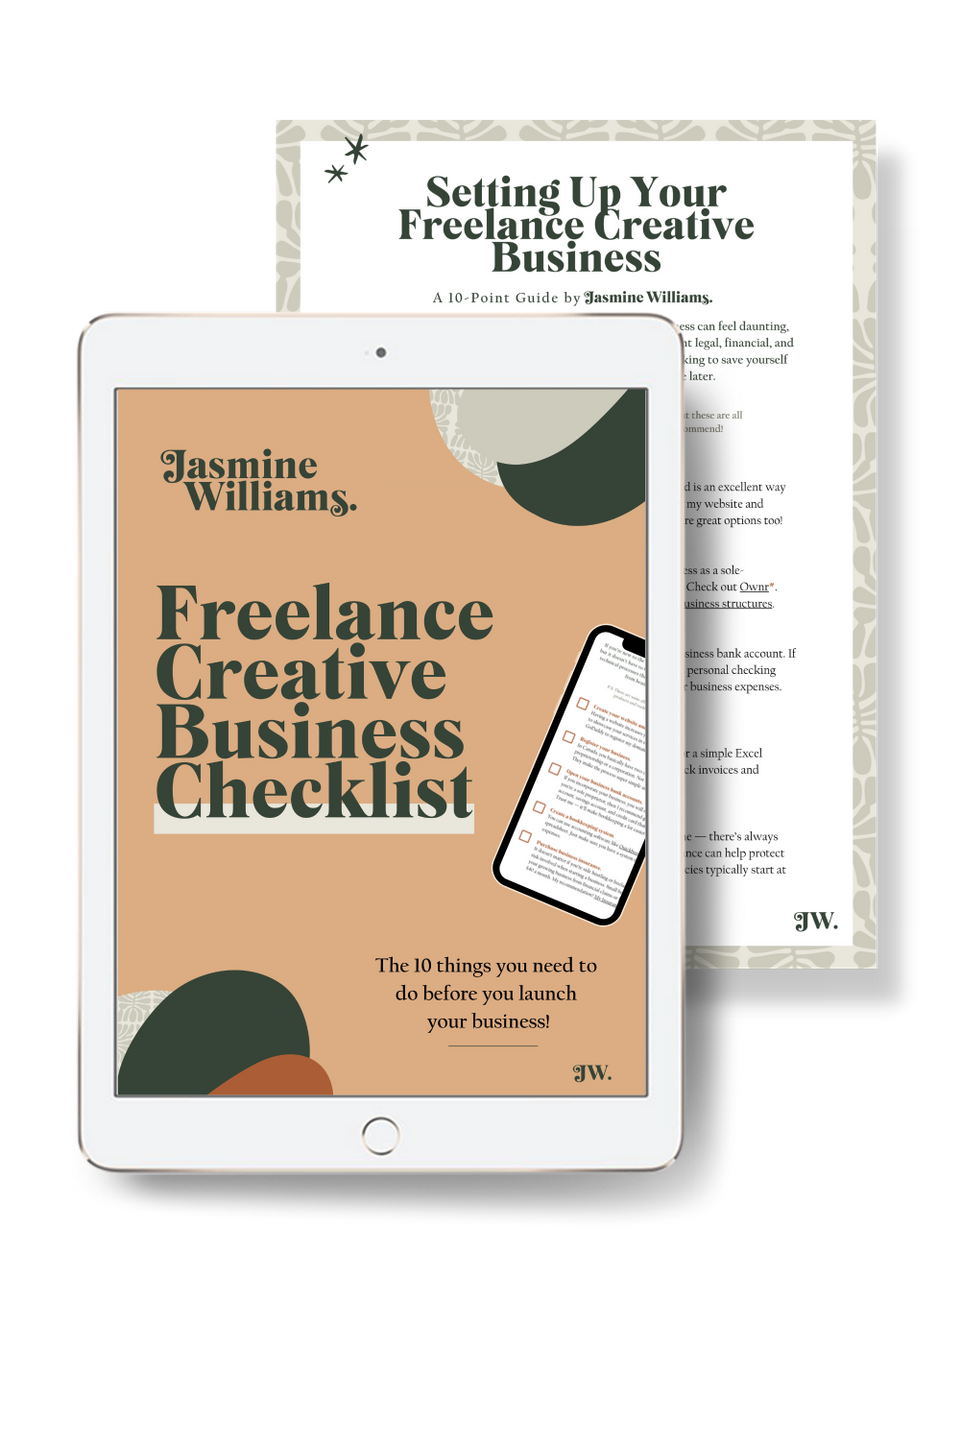 Image of the freelance creative business checklist on an iPad with a page from the guide behind it.